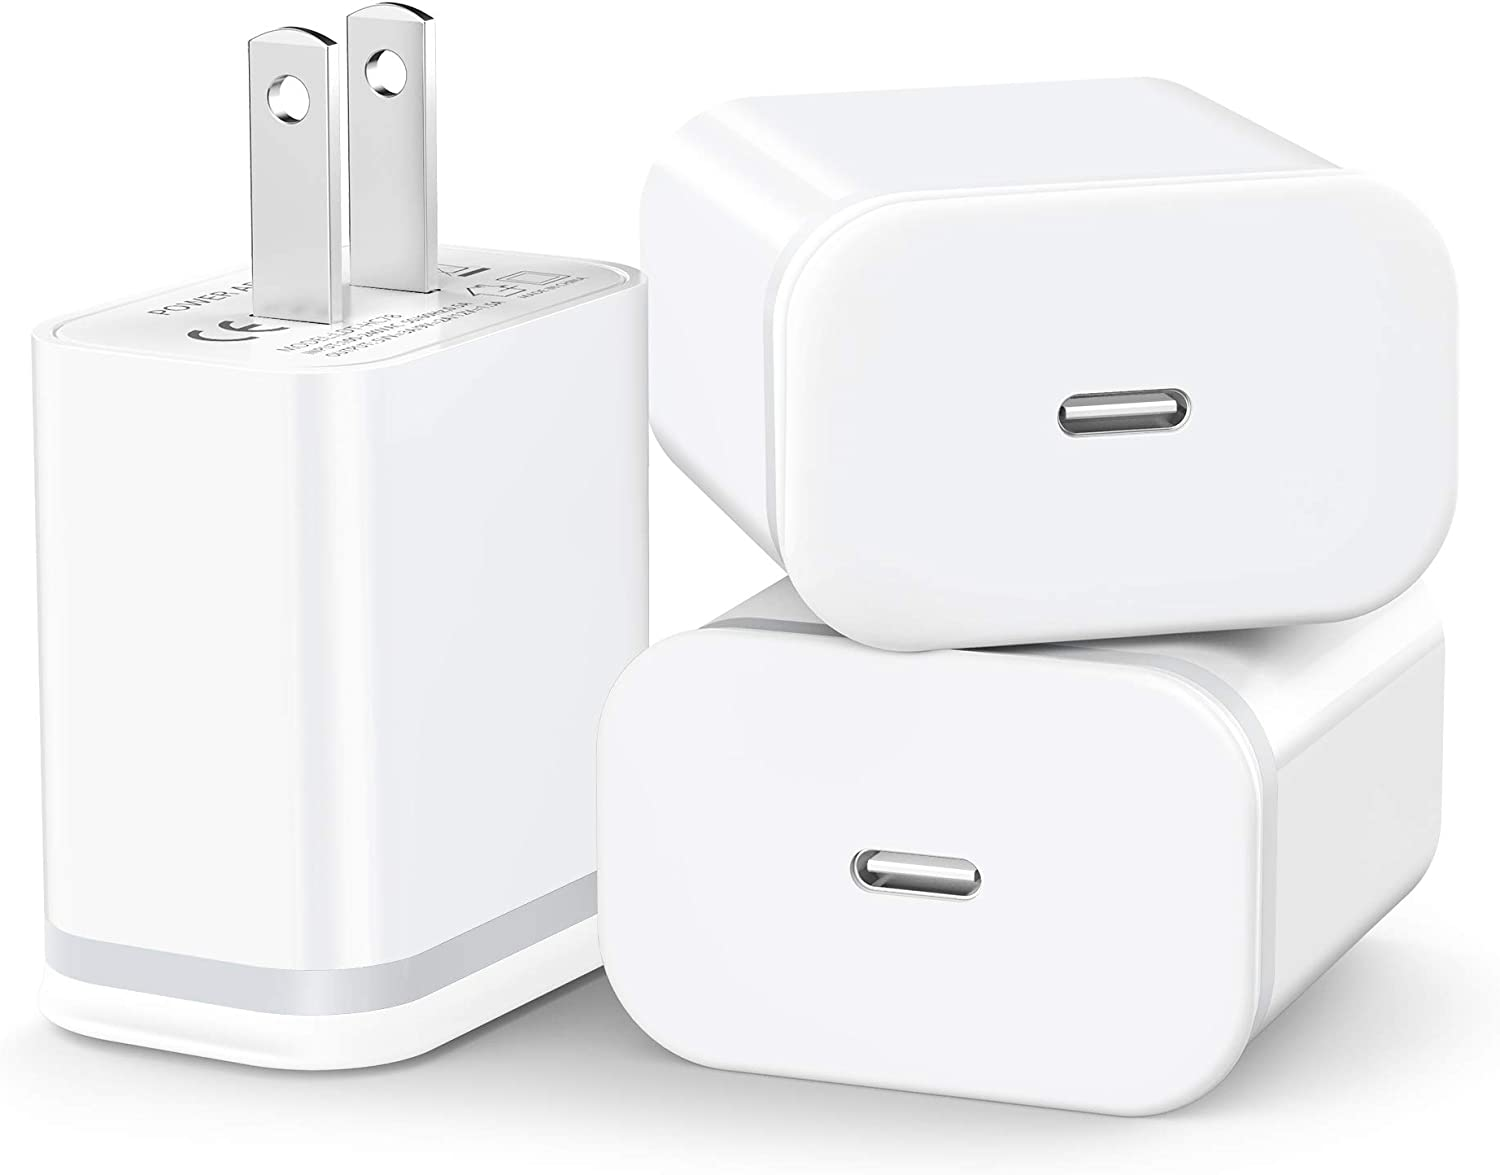 LUOATIP 3-Pack 20W USB C Fast Charger for iPhone 12/12 Mini/12 Pro/12 Pro Max, PD 3.0 Wall Plug Charging Cube Power Delivery Block Adapter Box Brick for Phone 11 Pro Max SE 2020, iPad, AirPods Pro